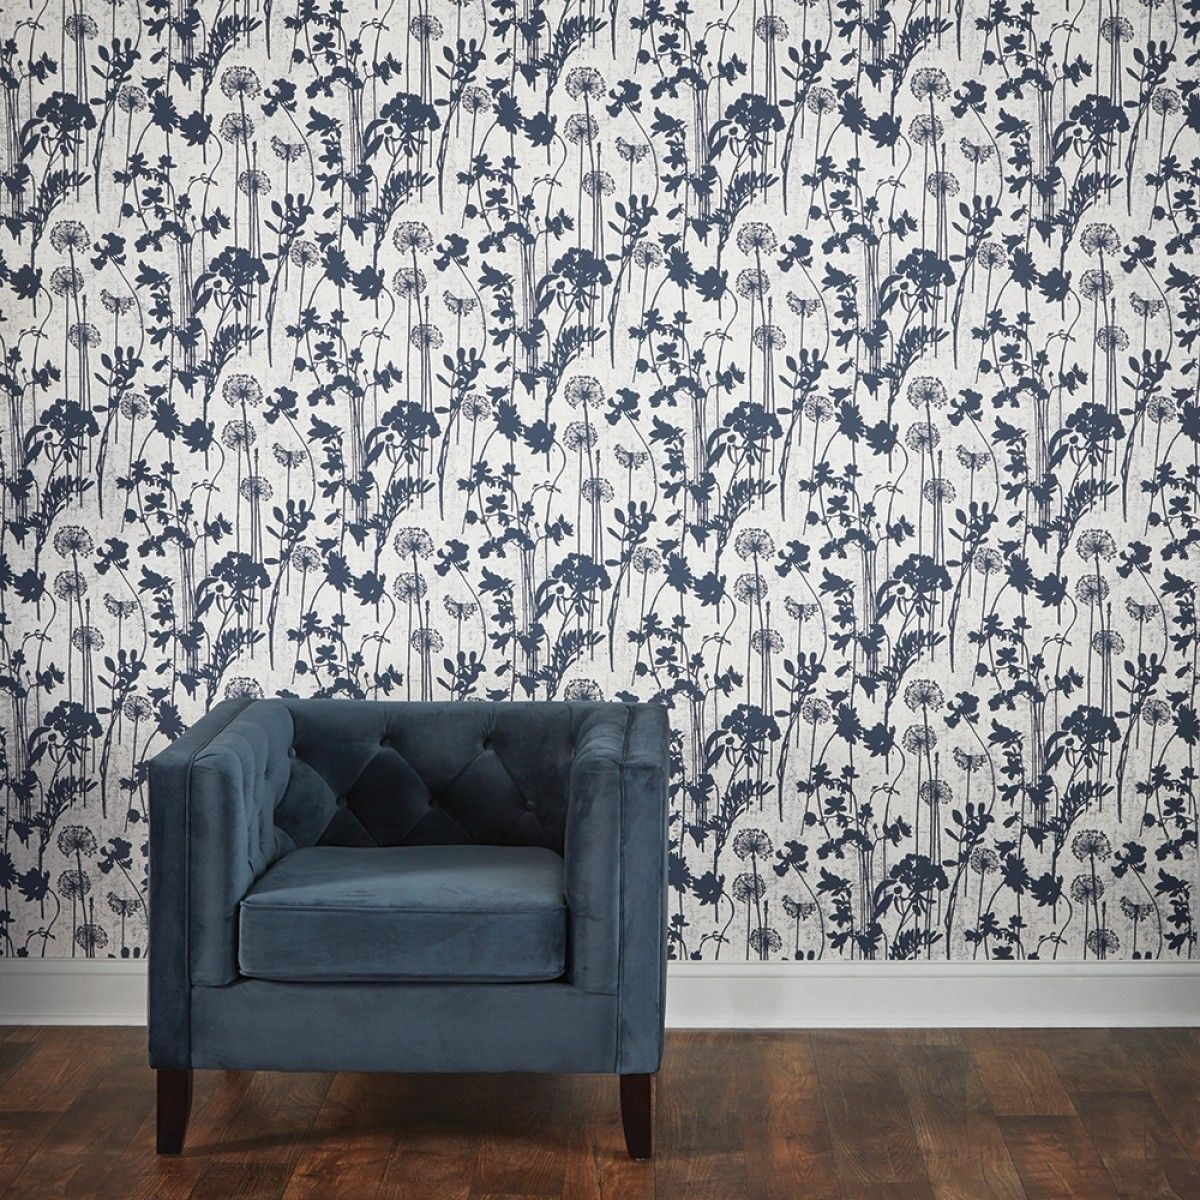 Distressed Floral Ivory Navy Di531 Wallpaper Self Adhesive